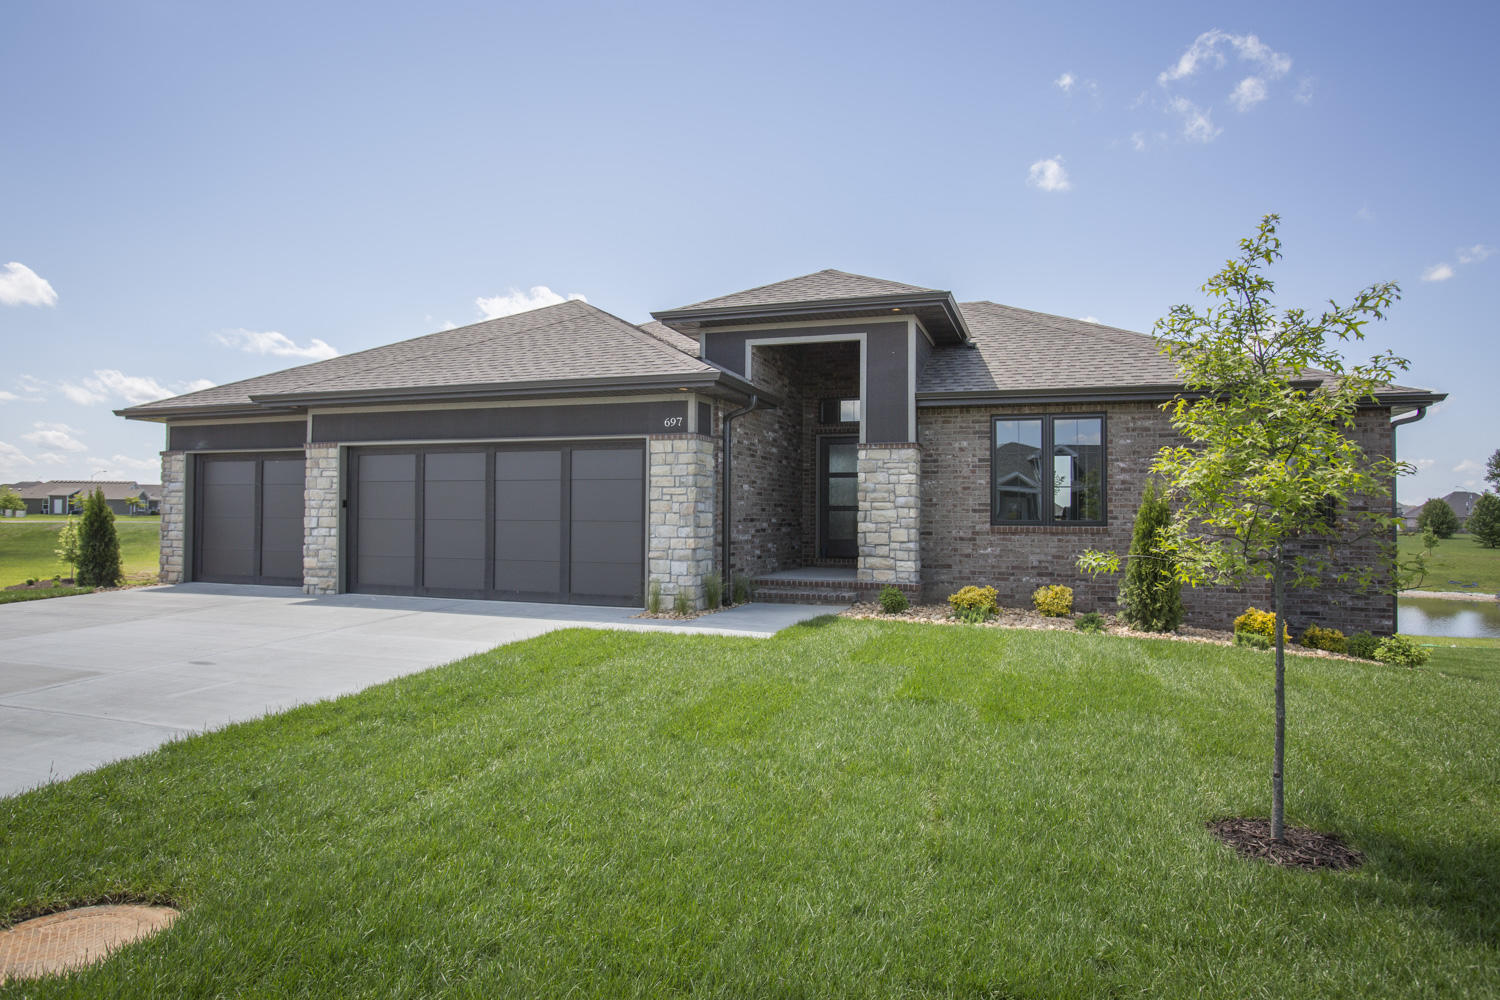 697 North Foxhill Circle Nixa, MO 65714